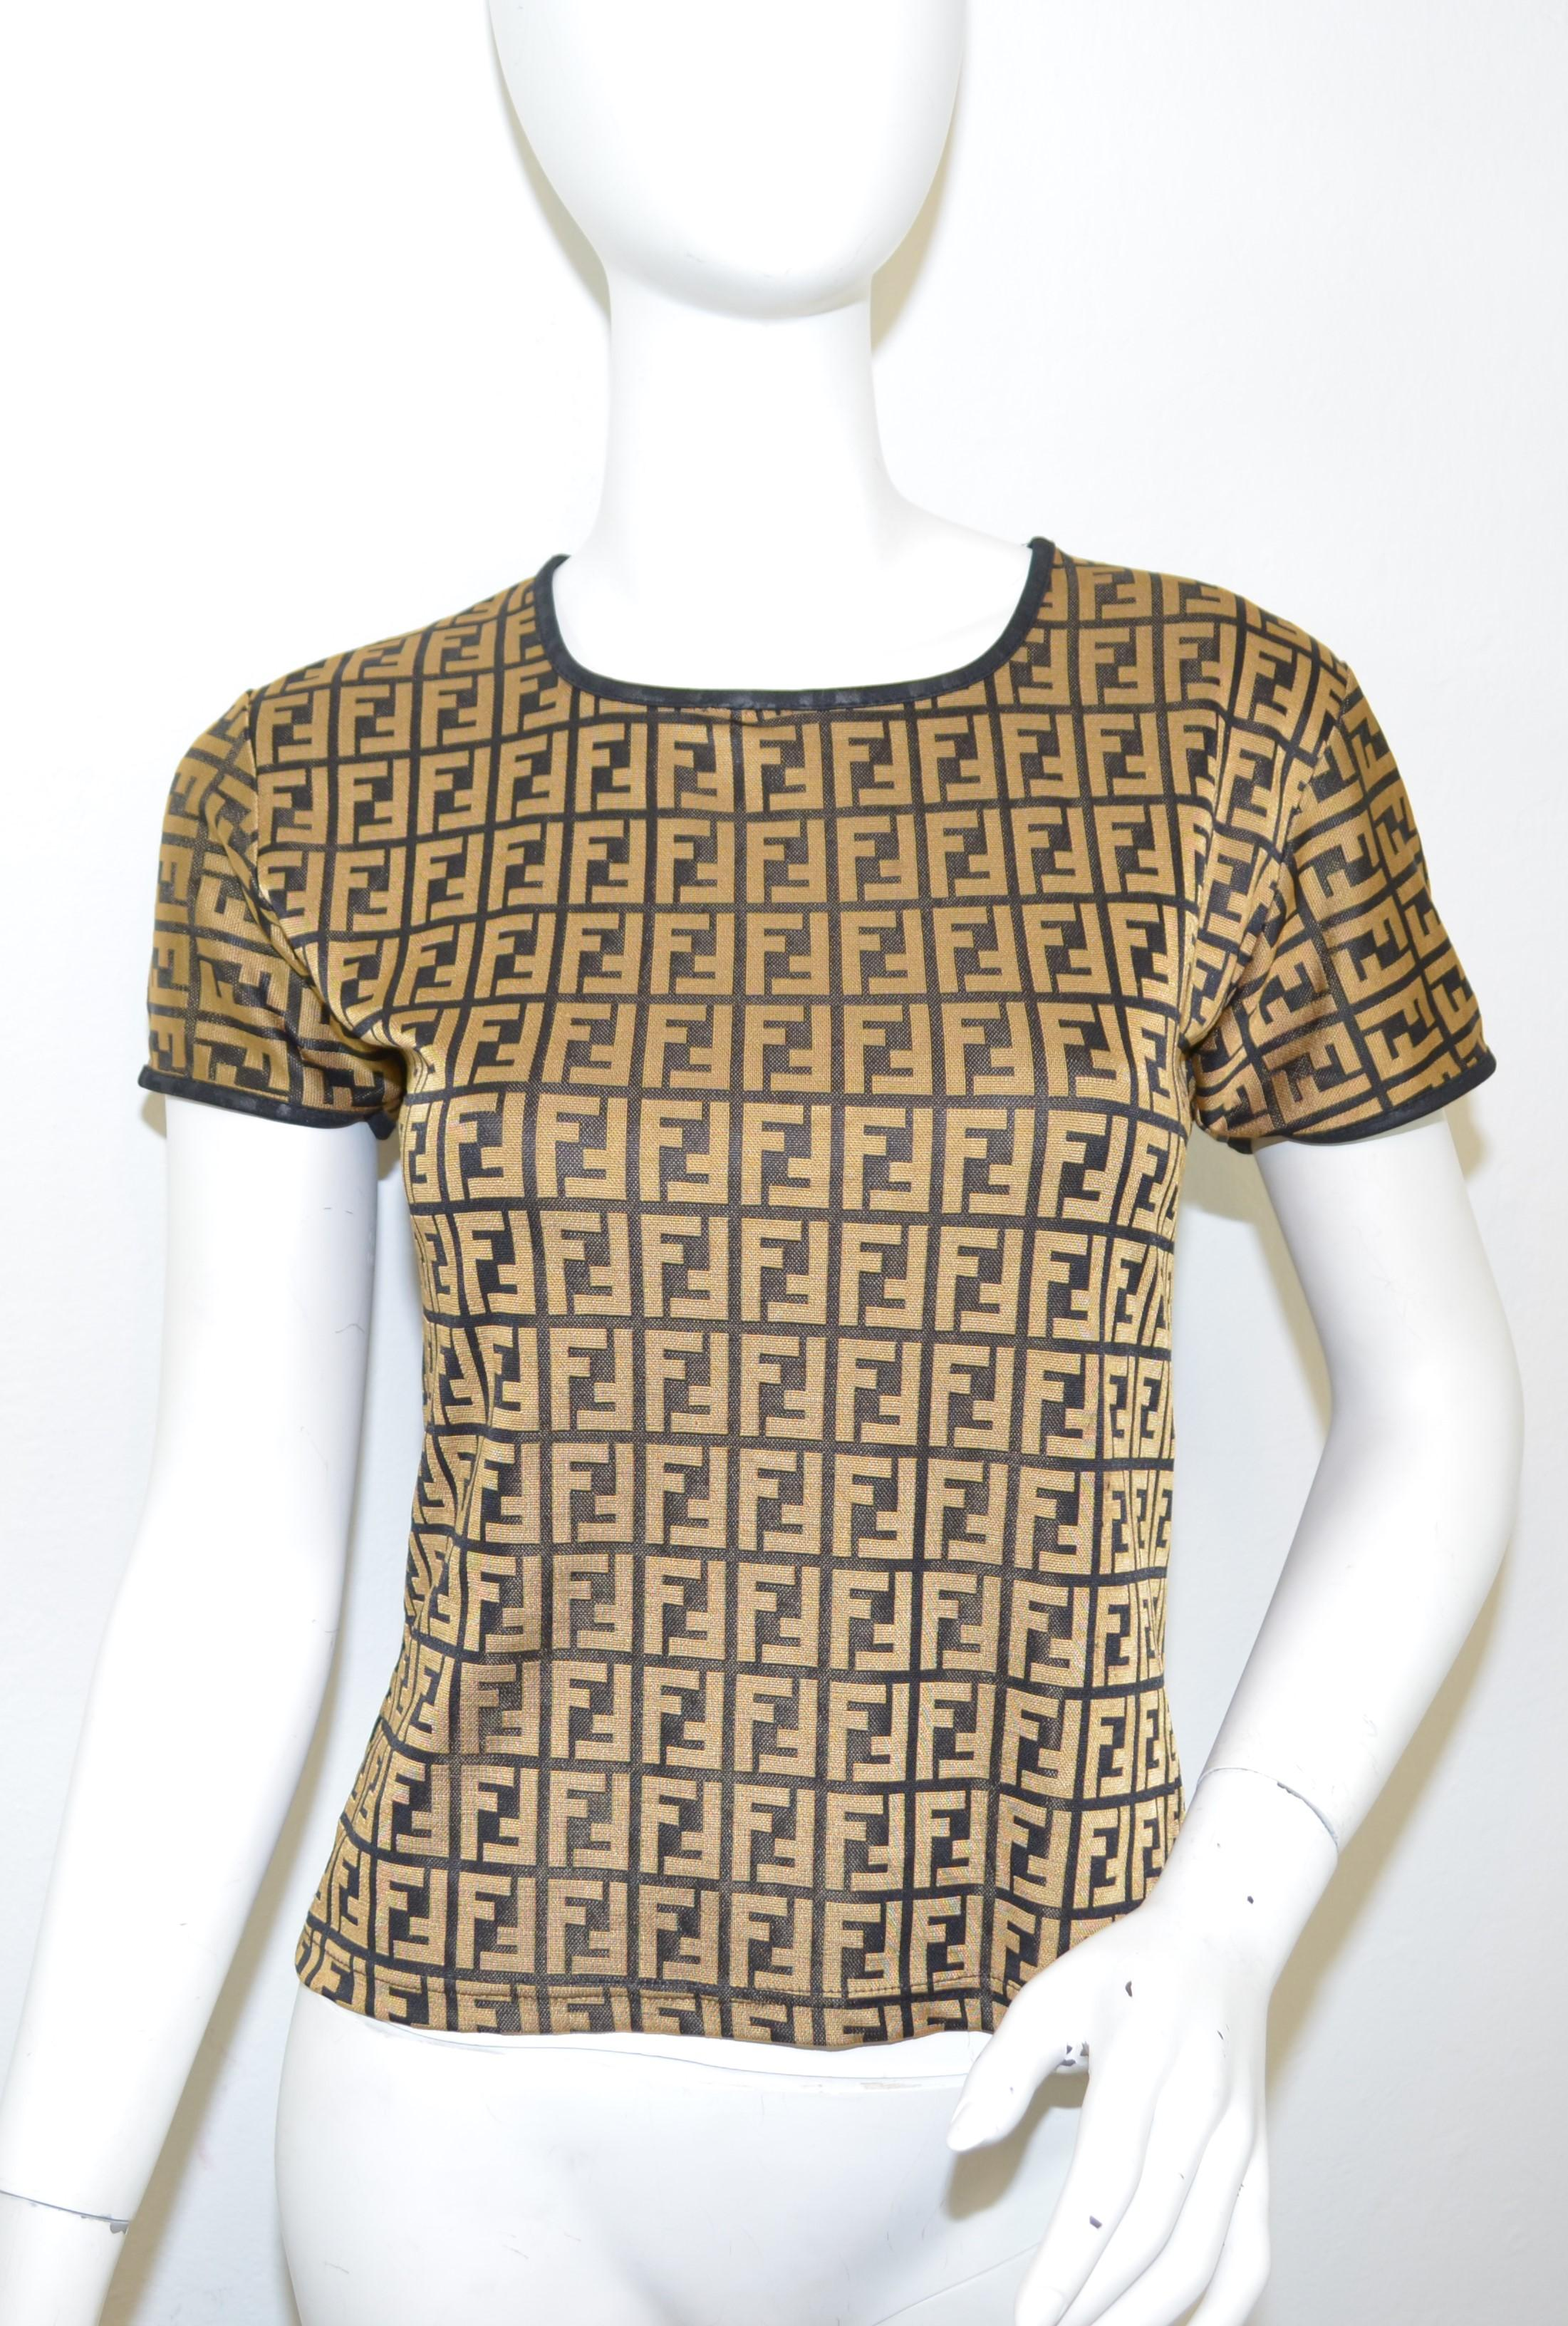 fac9a18796ee Fendi Zucca Logo Knit Top For Sale at 1stdibs